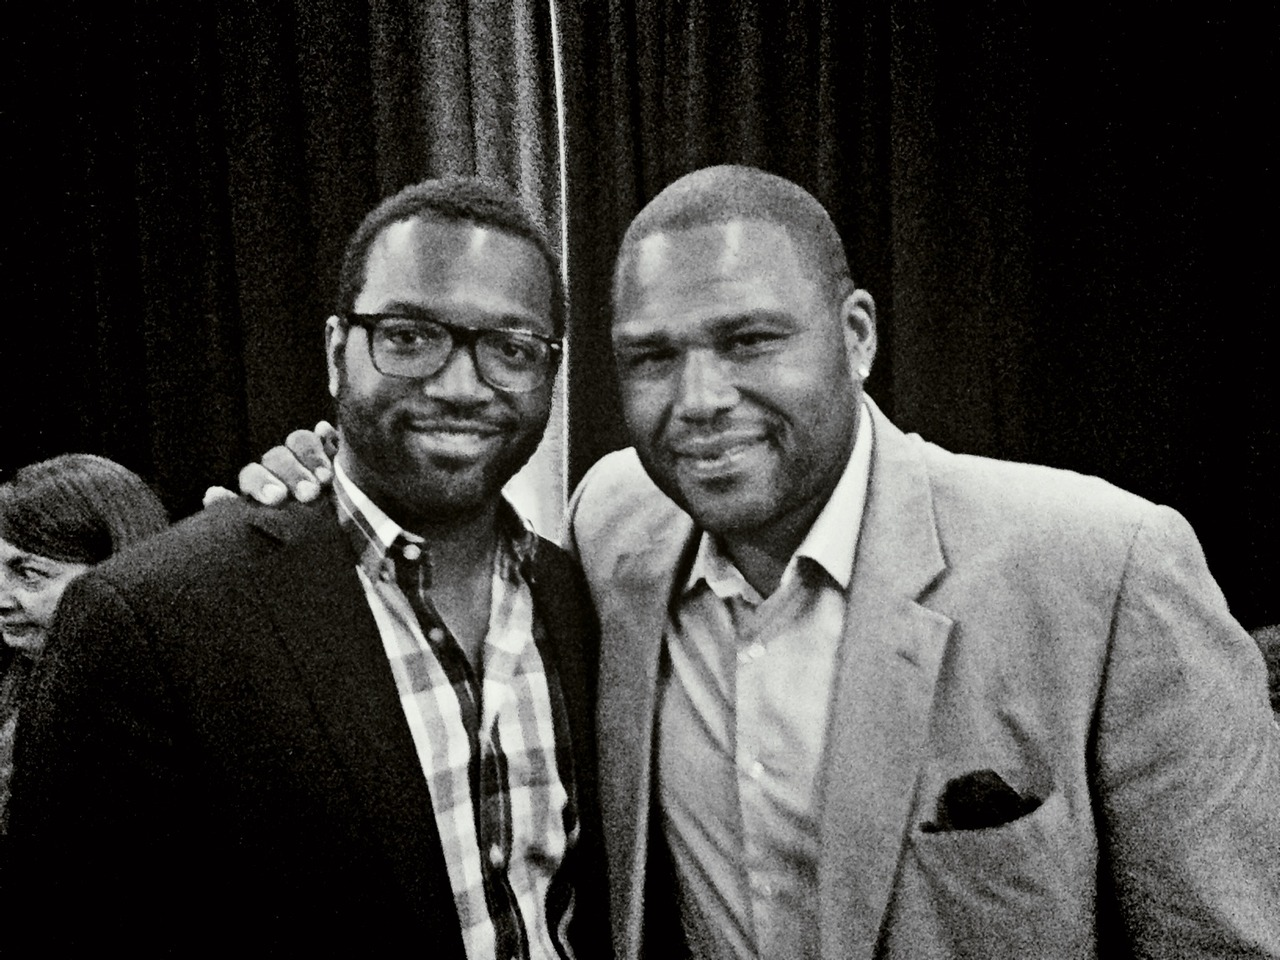 Met @AndersonAnthony at #AOLNewFront. We are both loud. – View on Path.